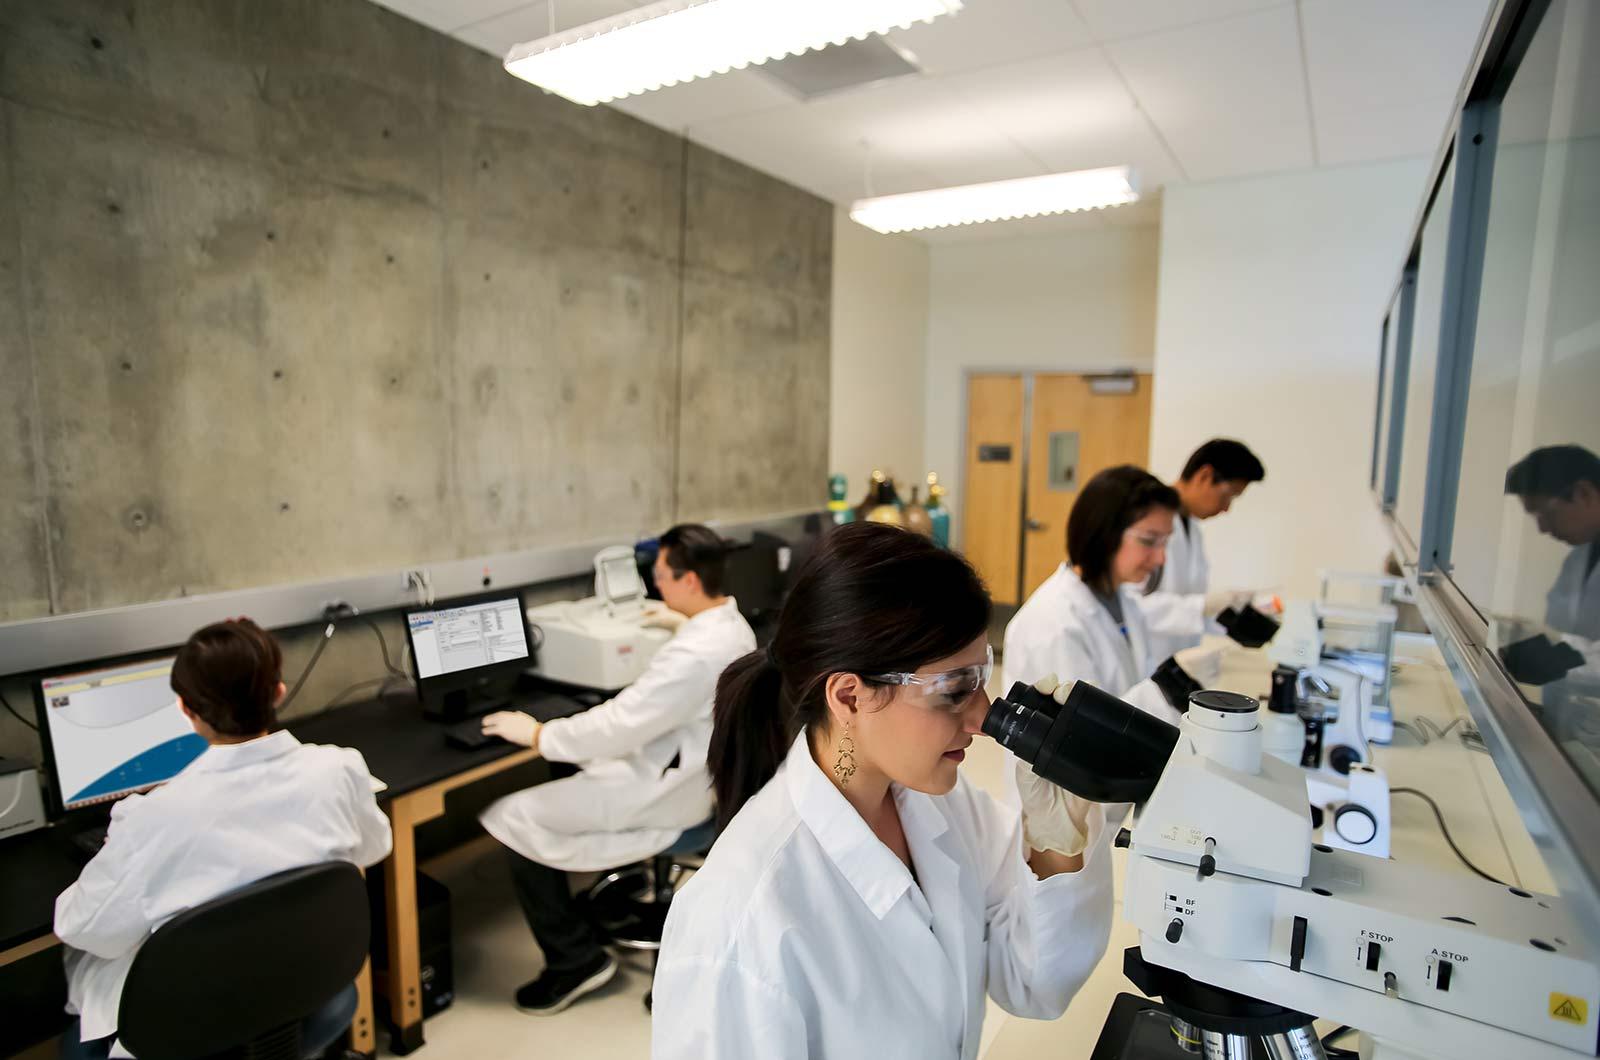 Examination-and-Science-Room-UCR-360-Tours-Virtual-Tour-Company-College-Vitual-Tours-Virtual-Tours-For-College-Microstope